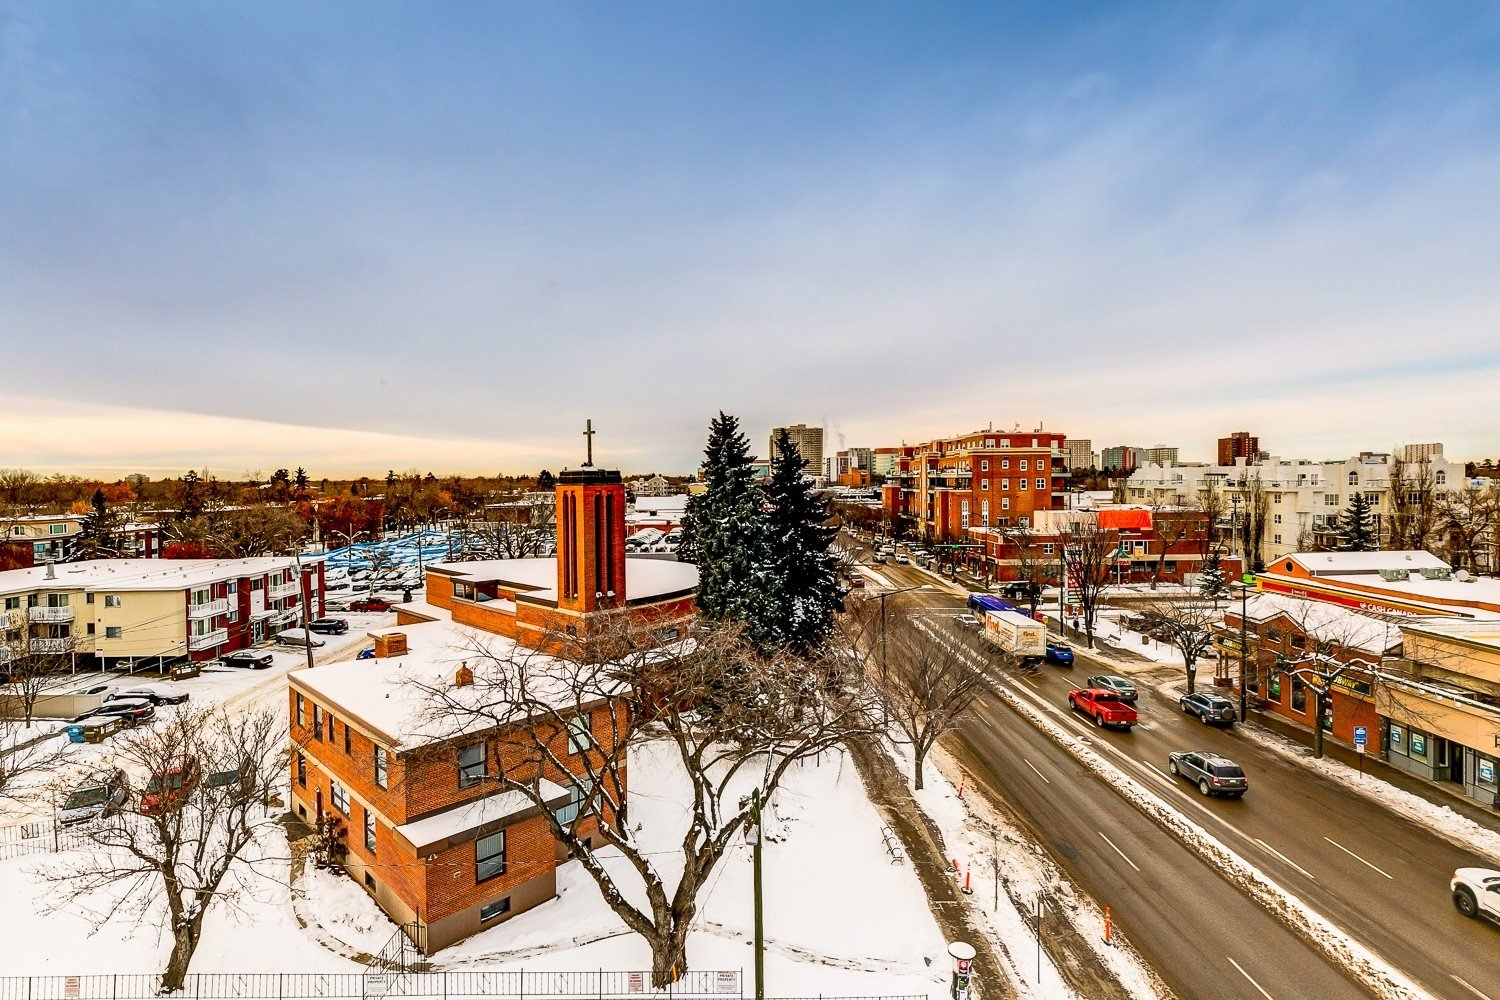 West View from Southpark - Whyte Avenue